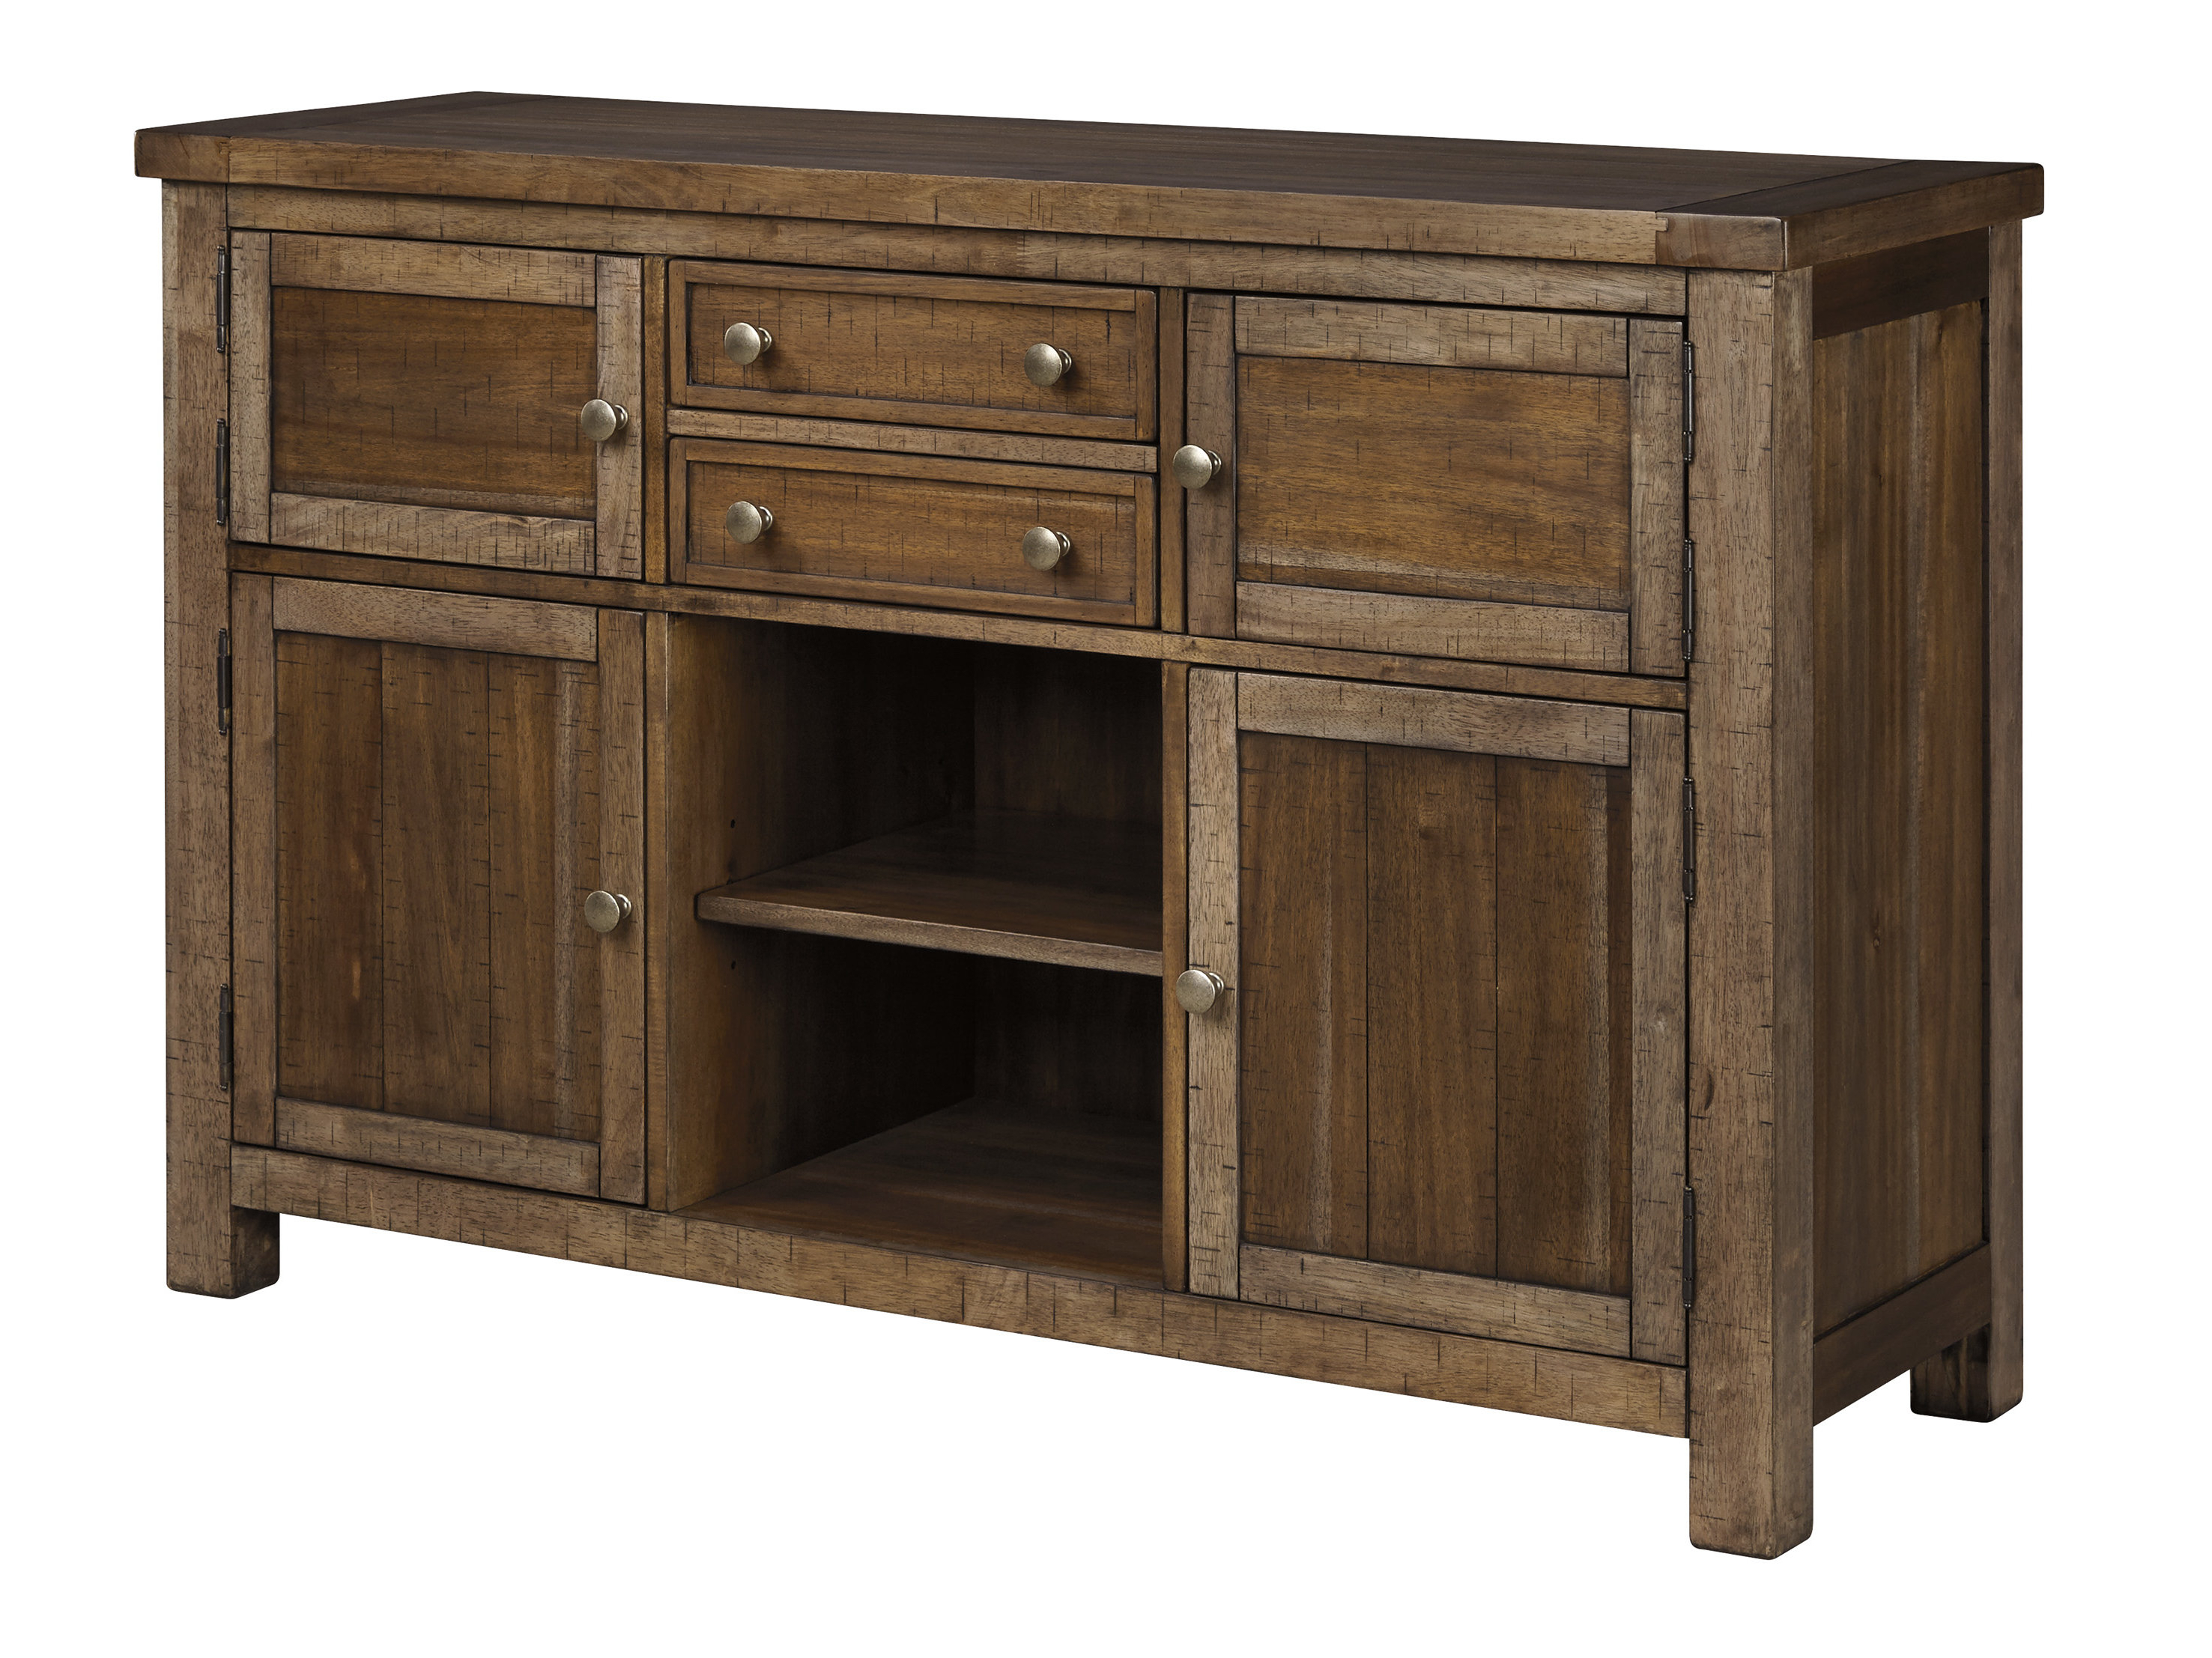 Hillary Dining Room Buffet Table For Filkins Sideboards (View 6 of 20)